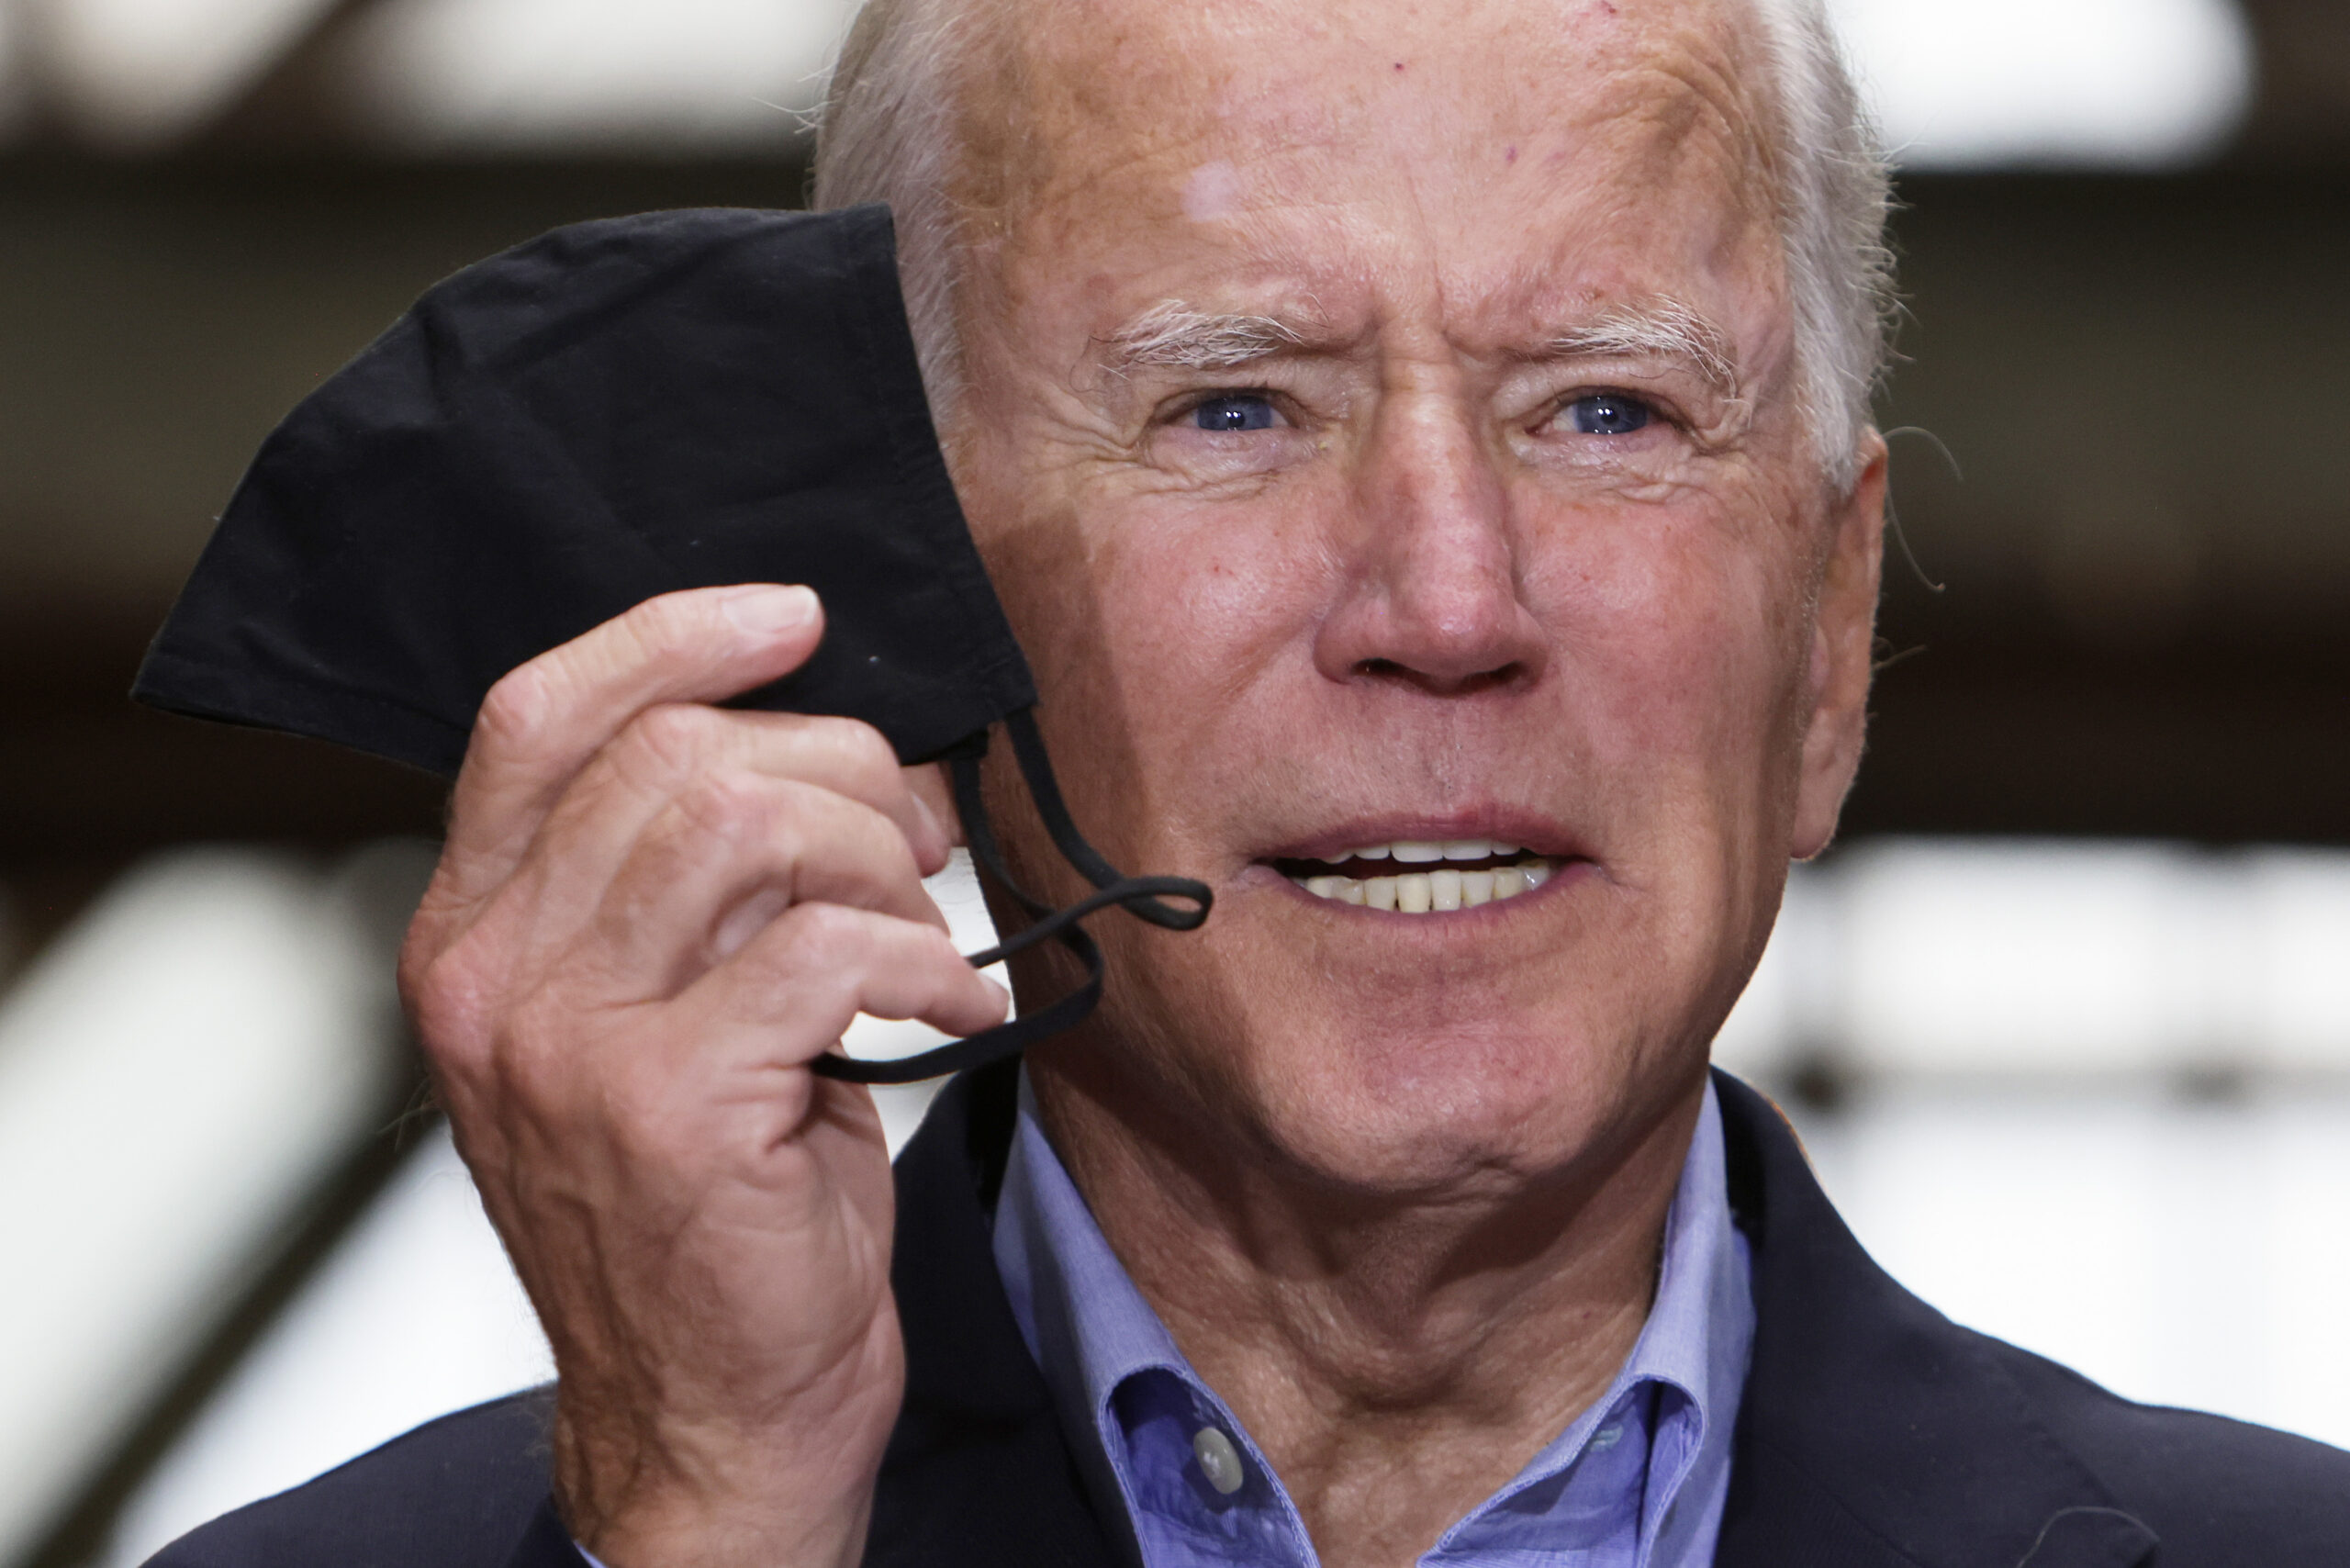 Joe Biden Suggests Police Aim For the Legs. But What Would That Change?